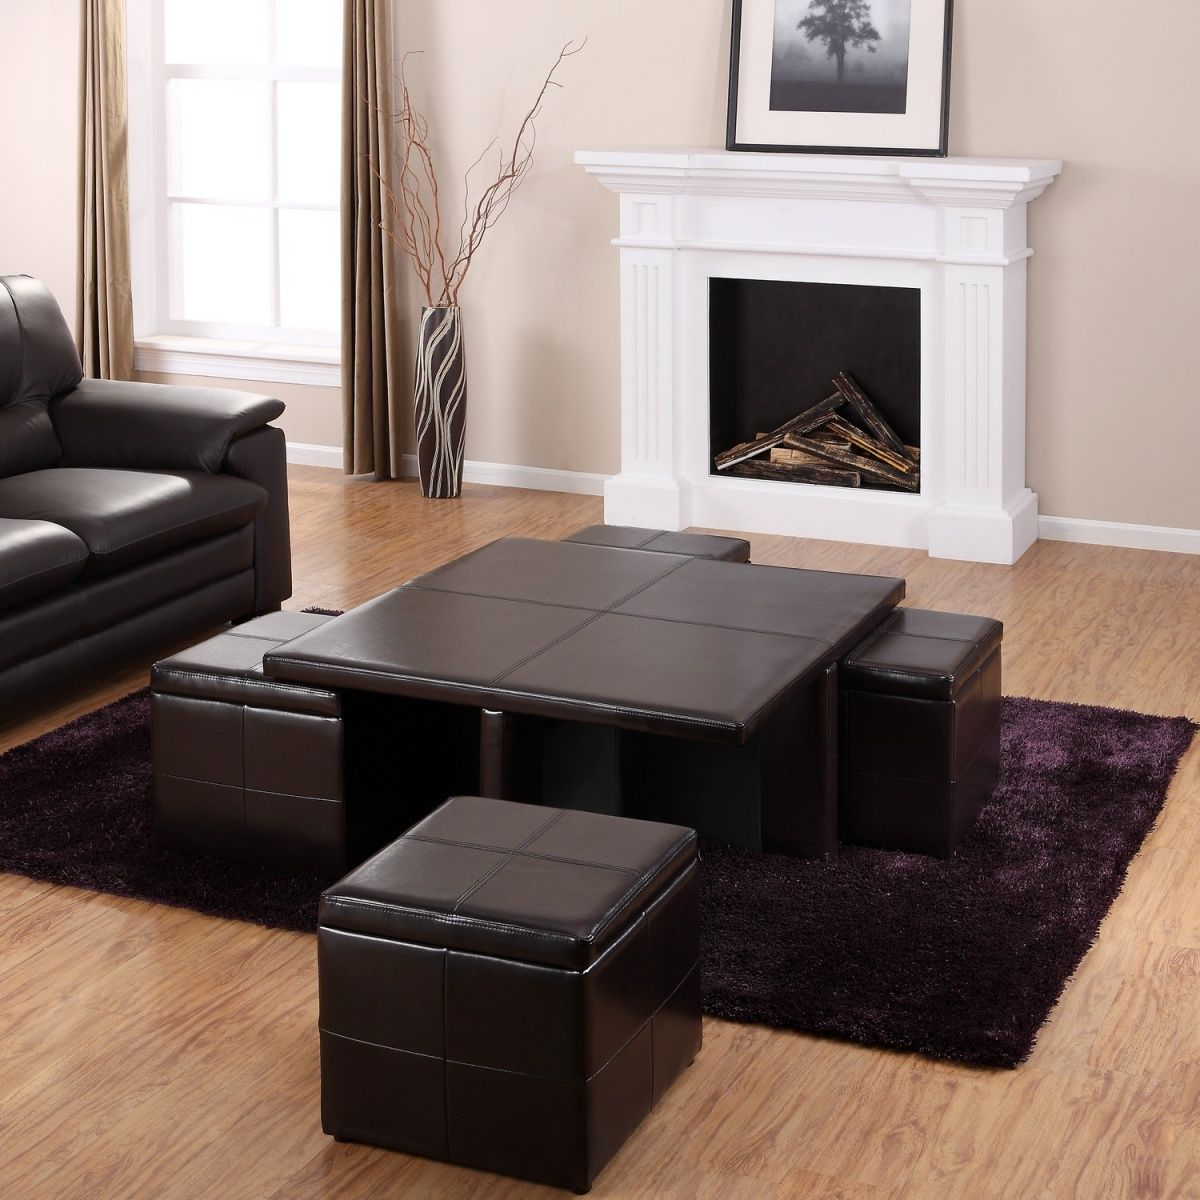 Lovely Try Multipurpose Coffee Tables And Ottomans: While Itu0027s Essential To  Squeeze Inadequate Seating, Donu0027t Overdo It U2014 Adding Too Many Sofas Or  Large Ottomans ...